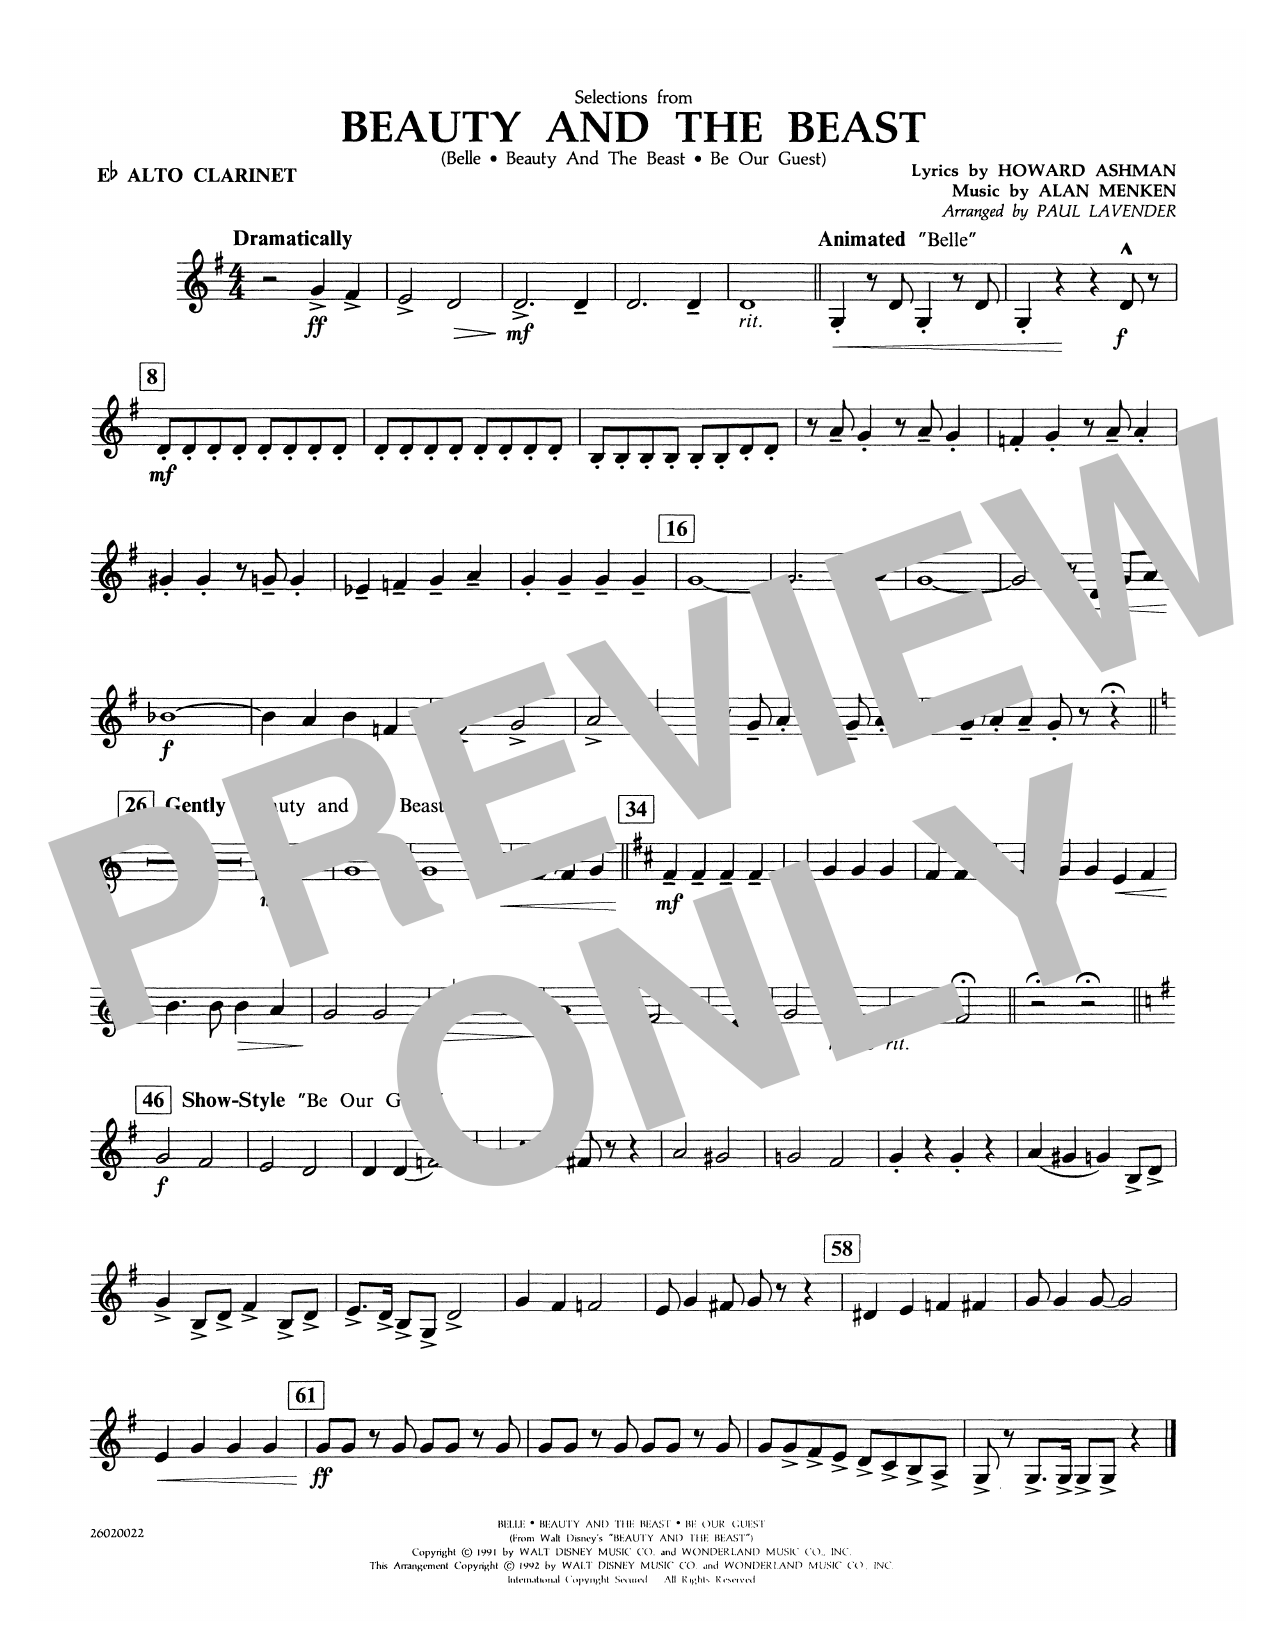 Paul Lavender Selections from Beauty and the Beast - Eb Alto Clarinet sheet music notes and chords. Download Printable PDF.